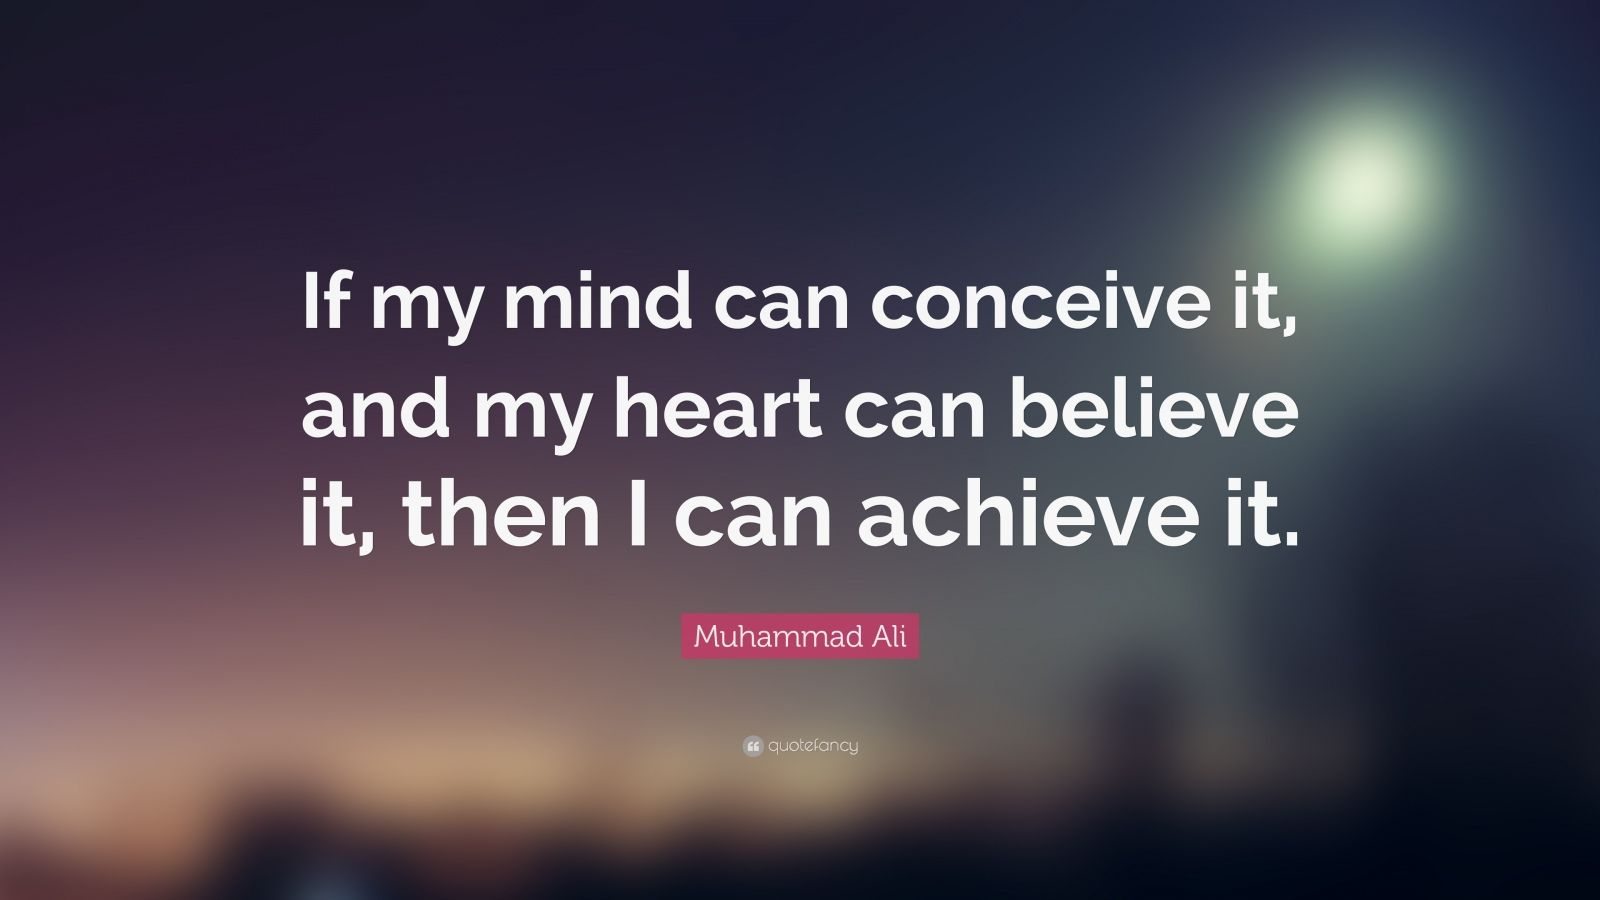 Motivational Workout Wallpapers With Quotes Muhammad Ali Quote If My Mind Can Conceive It And My